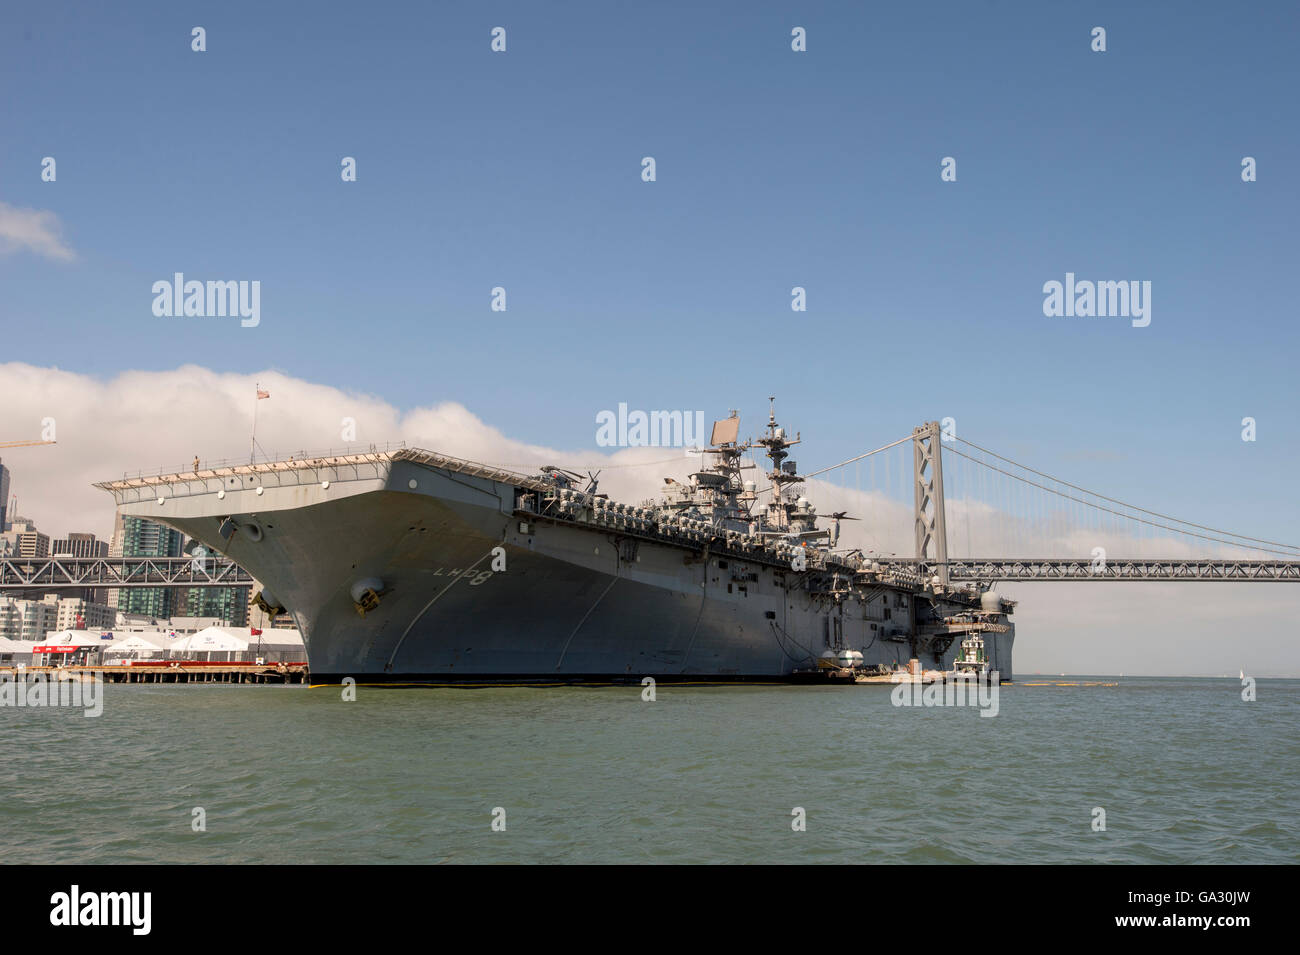 United States Navy's USS Makin Island (LHD-8) Wasp-class amphibious assault ship, San Francisco. Stock Photo